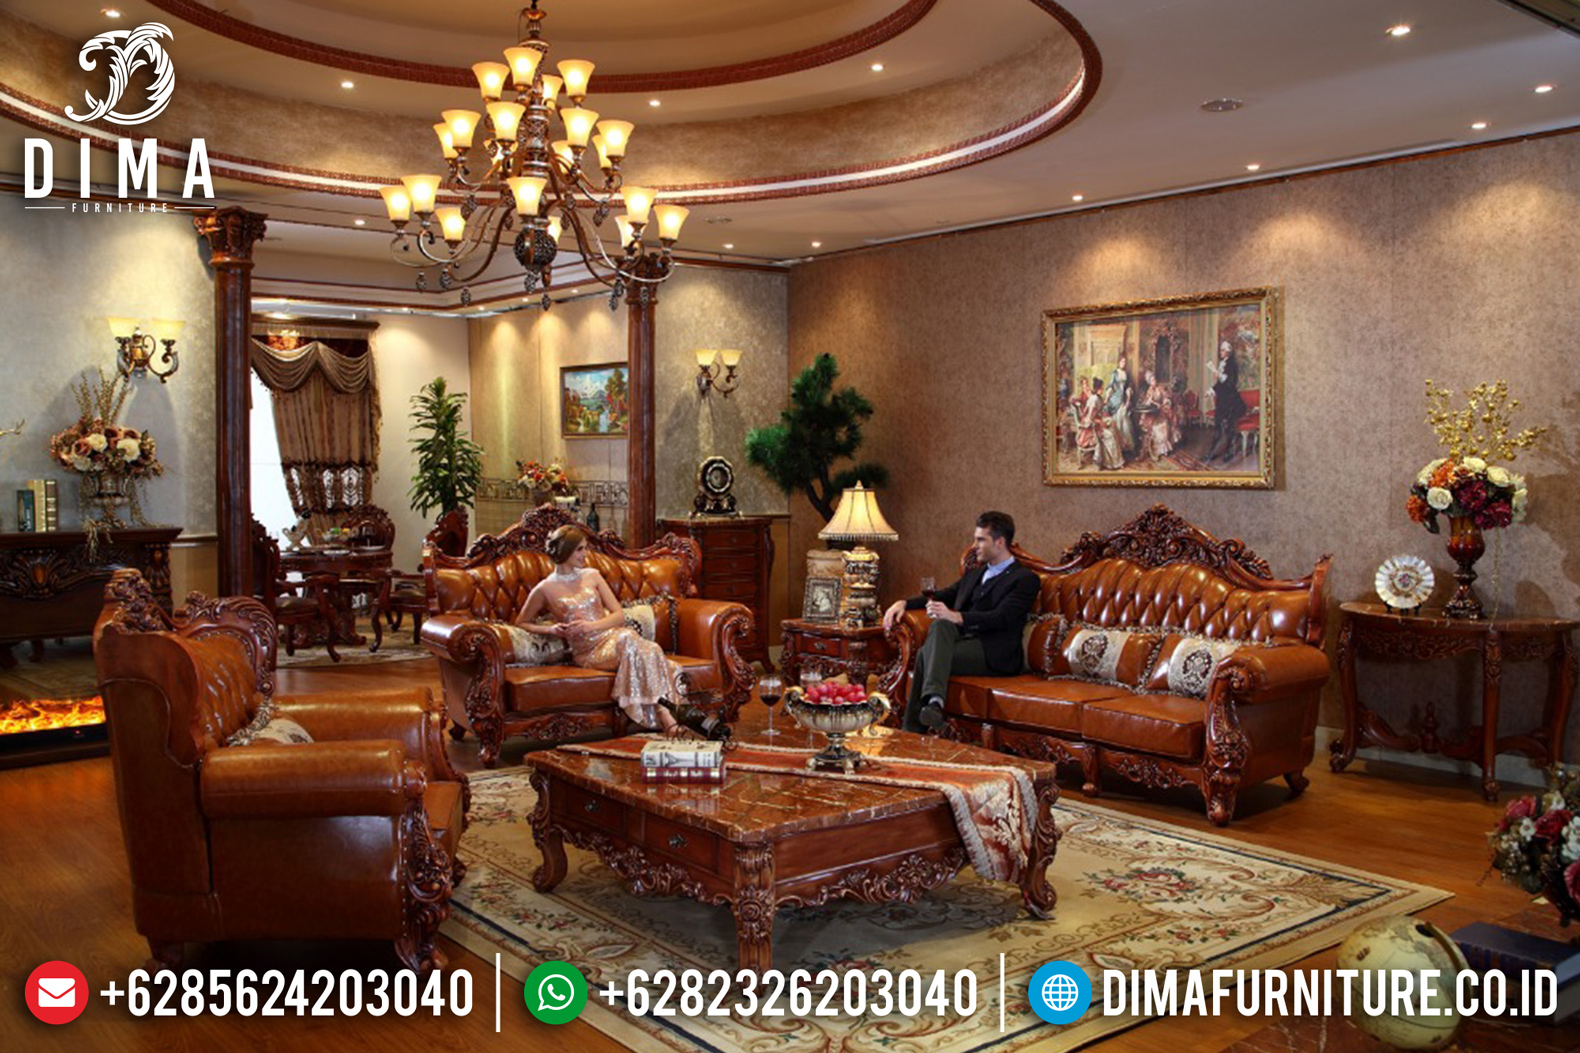 Luxury Italian Furniture Sofa Tamu Jepara Mewah Klasik Natural ST-0614